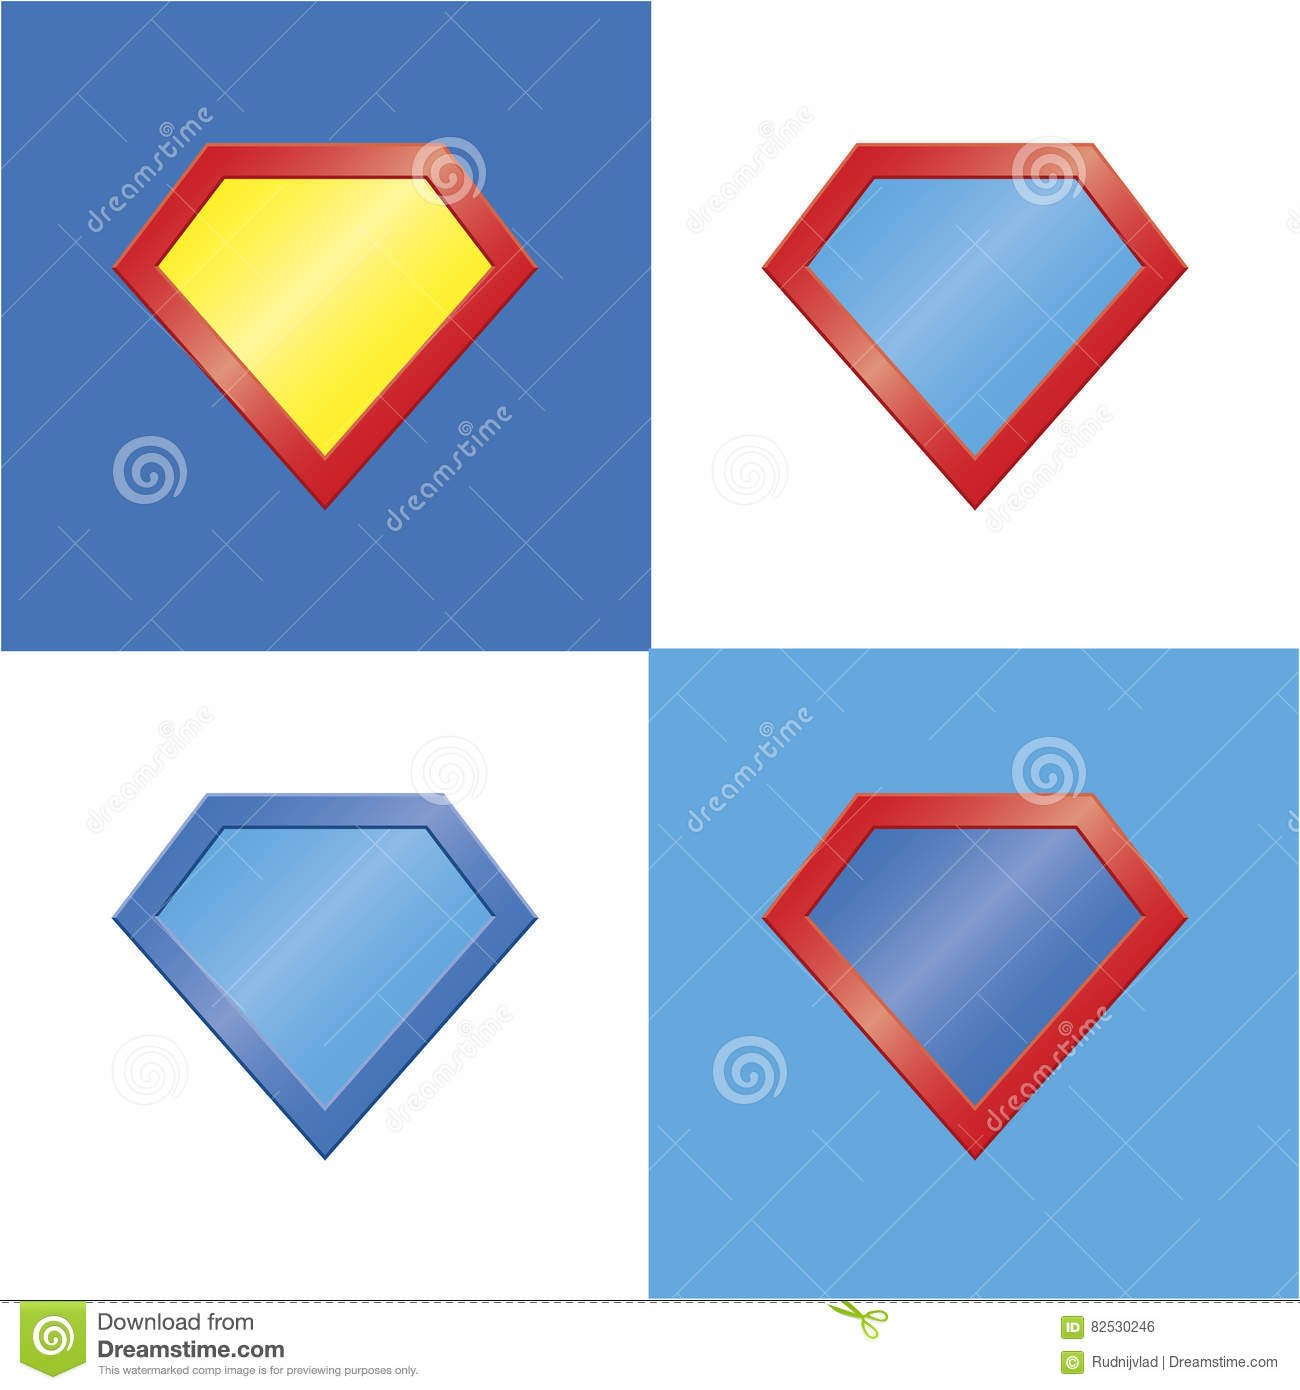 blank superhero logo template pictures to pin on pinterest